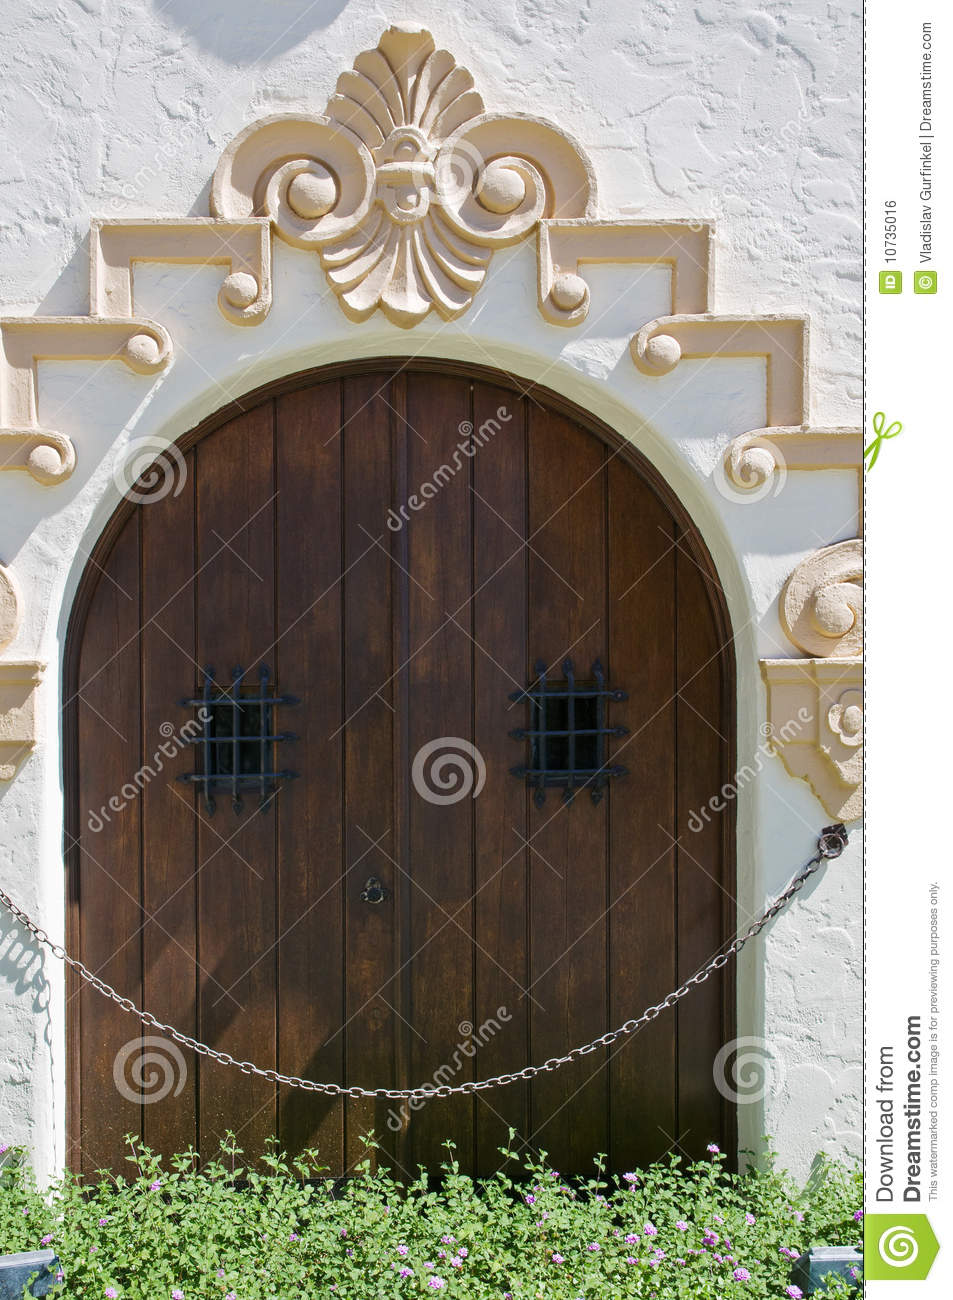 Crafty wooden door with small windows royalty free stock for Door with small window